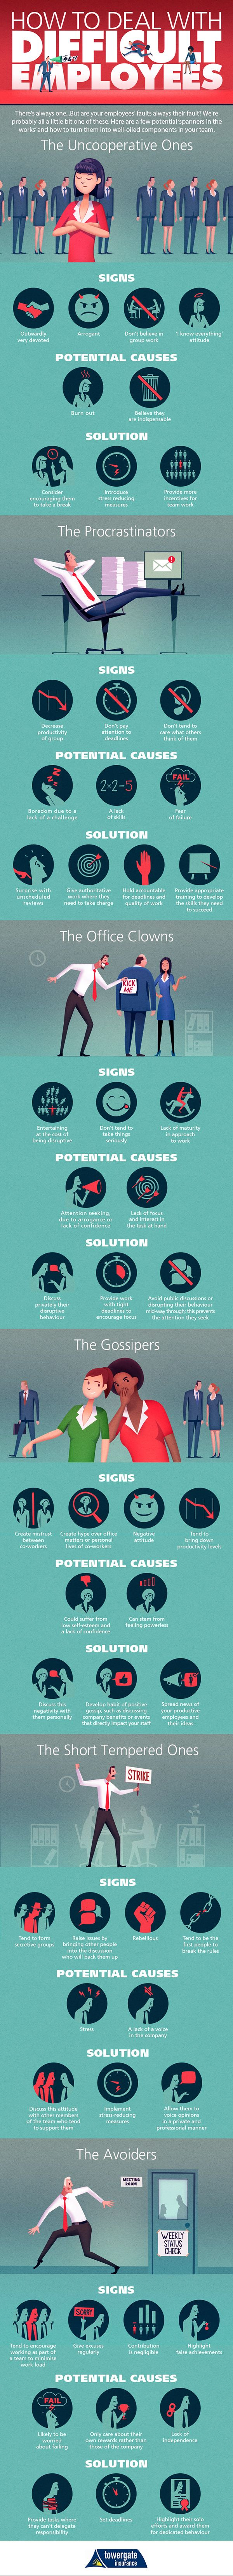 How To Deal With Difficult Employees - #infographic